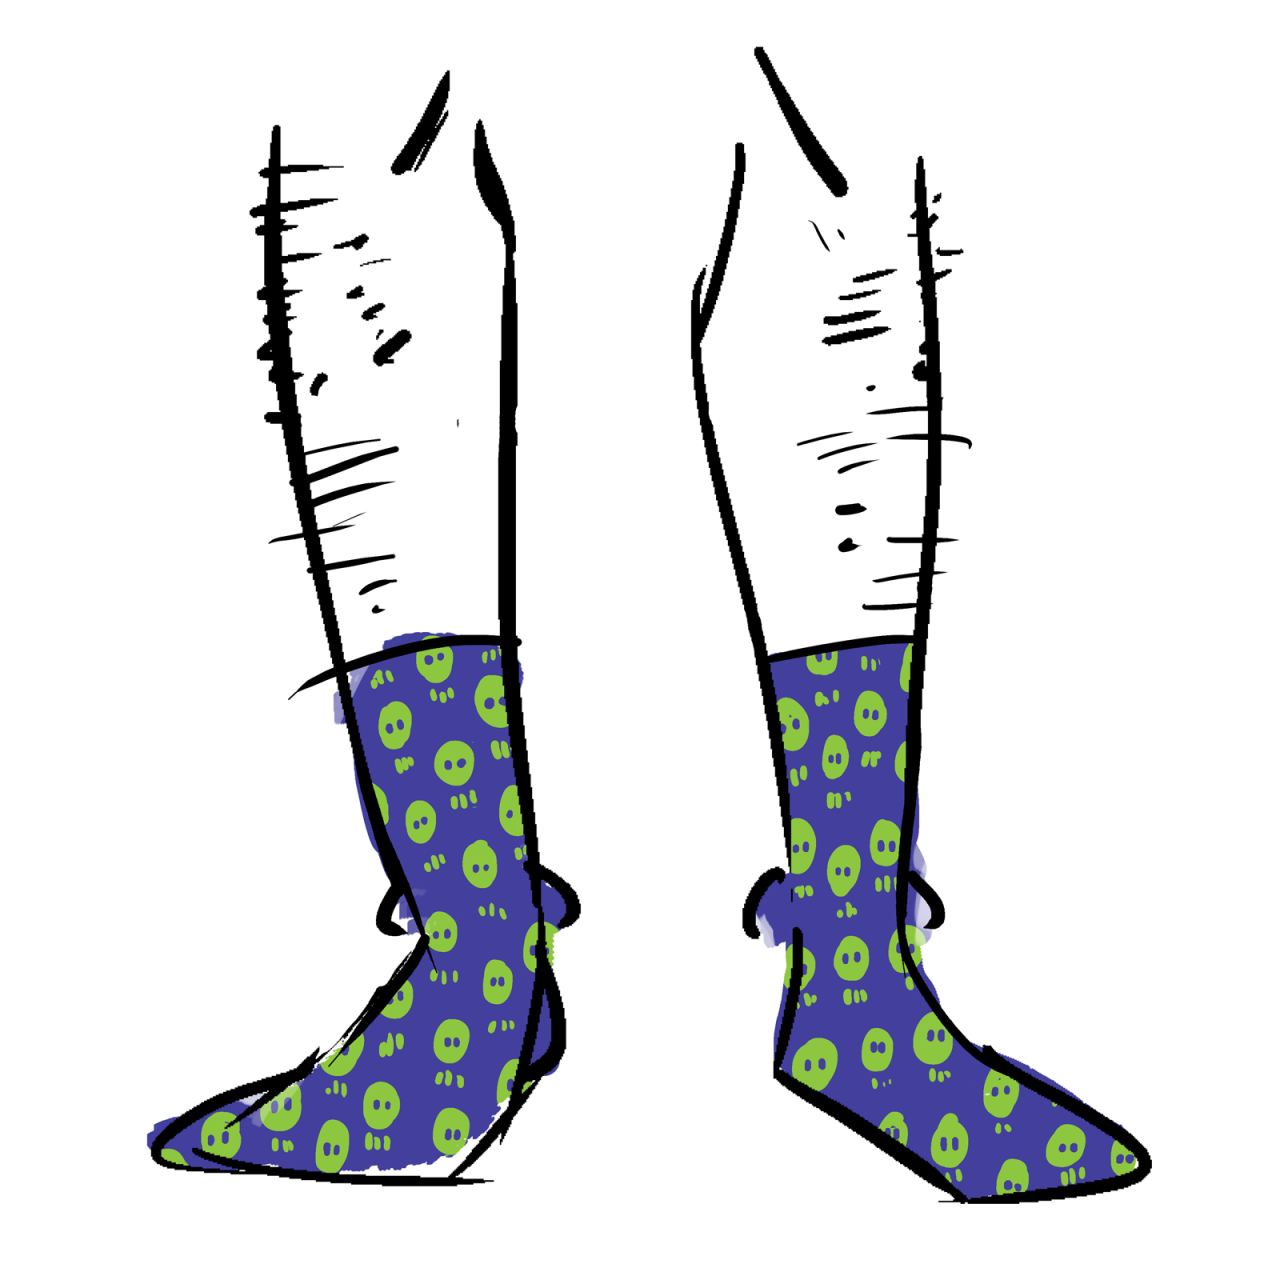 Blue socks with green skulls as a pattern